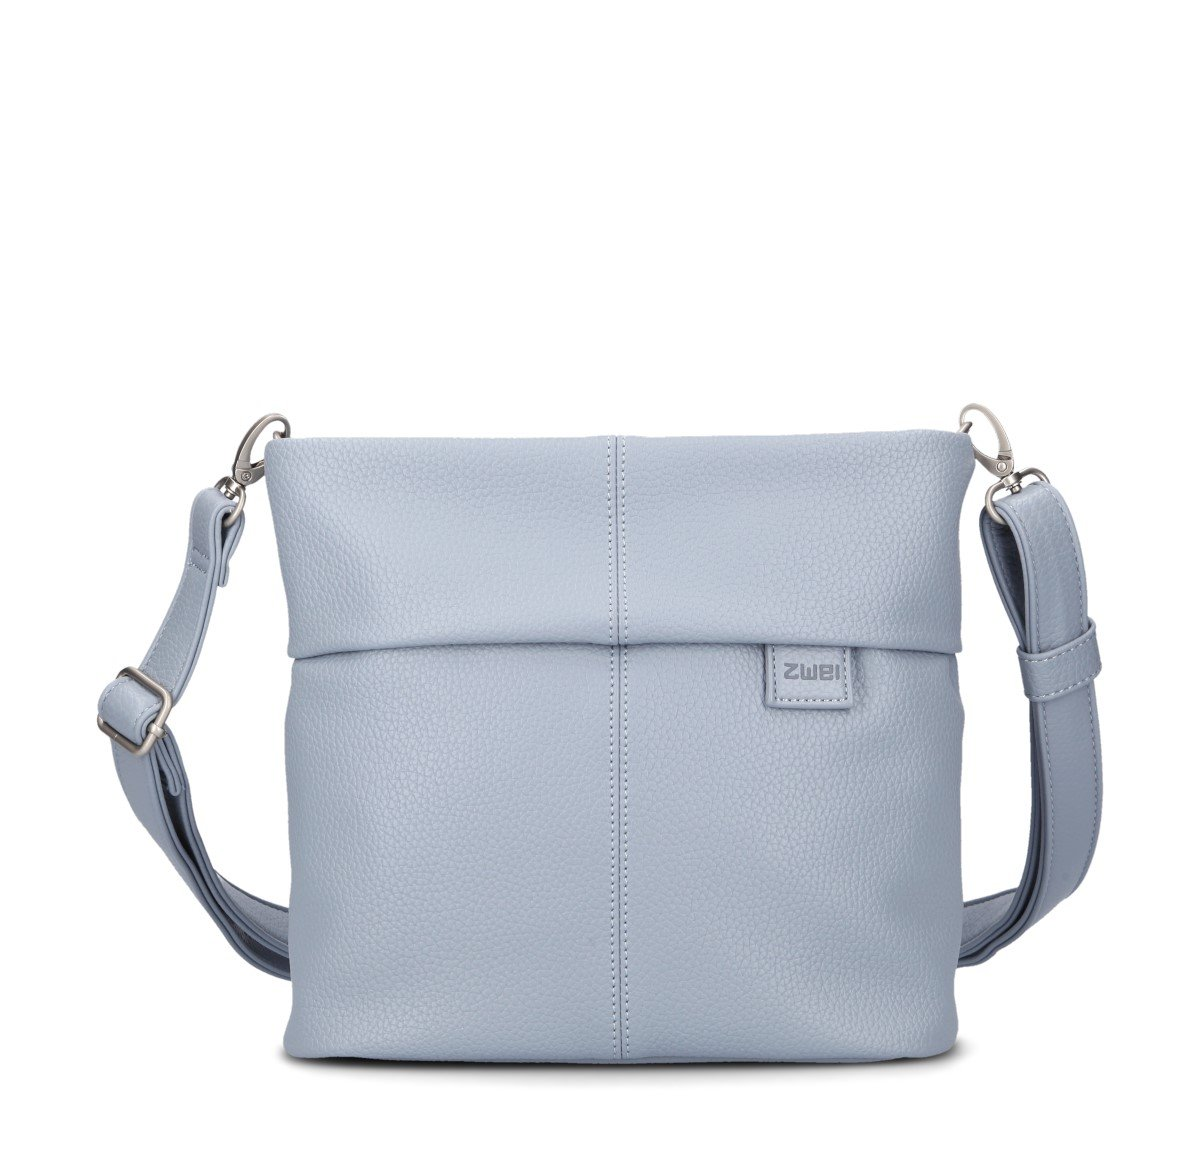 M8 - small bag with interchangeable shoulder straps